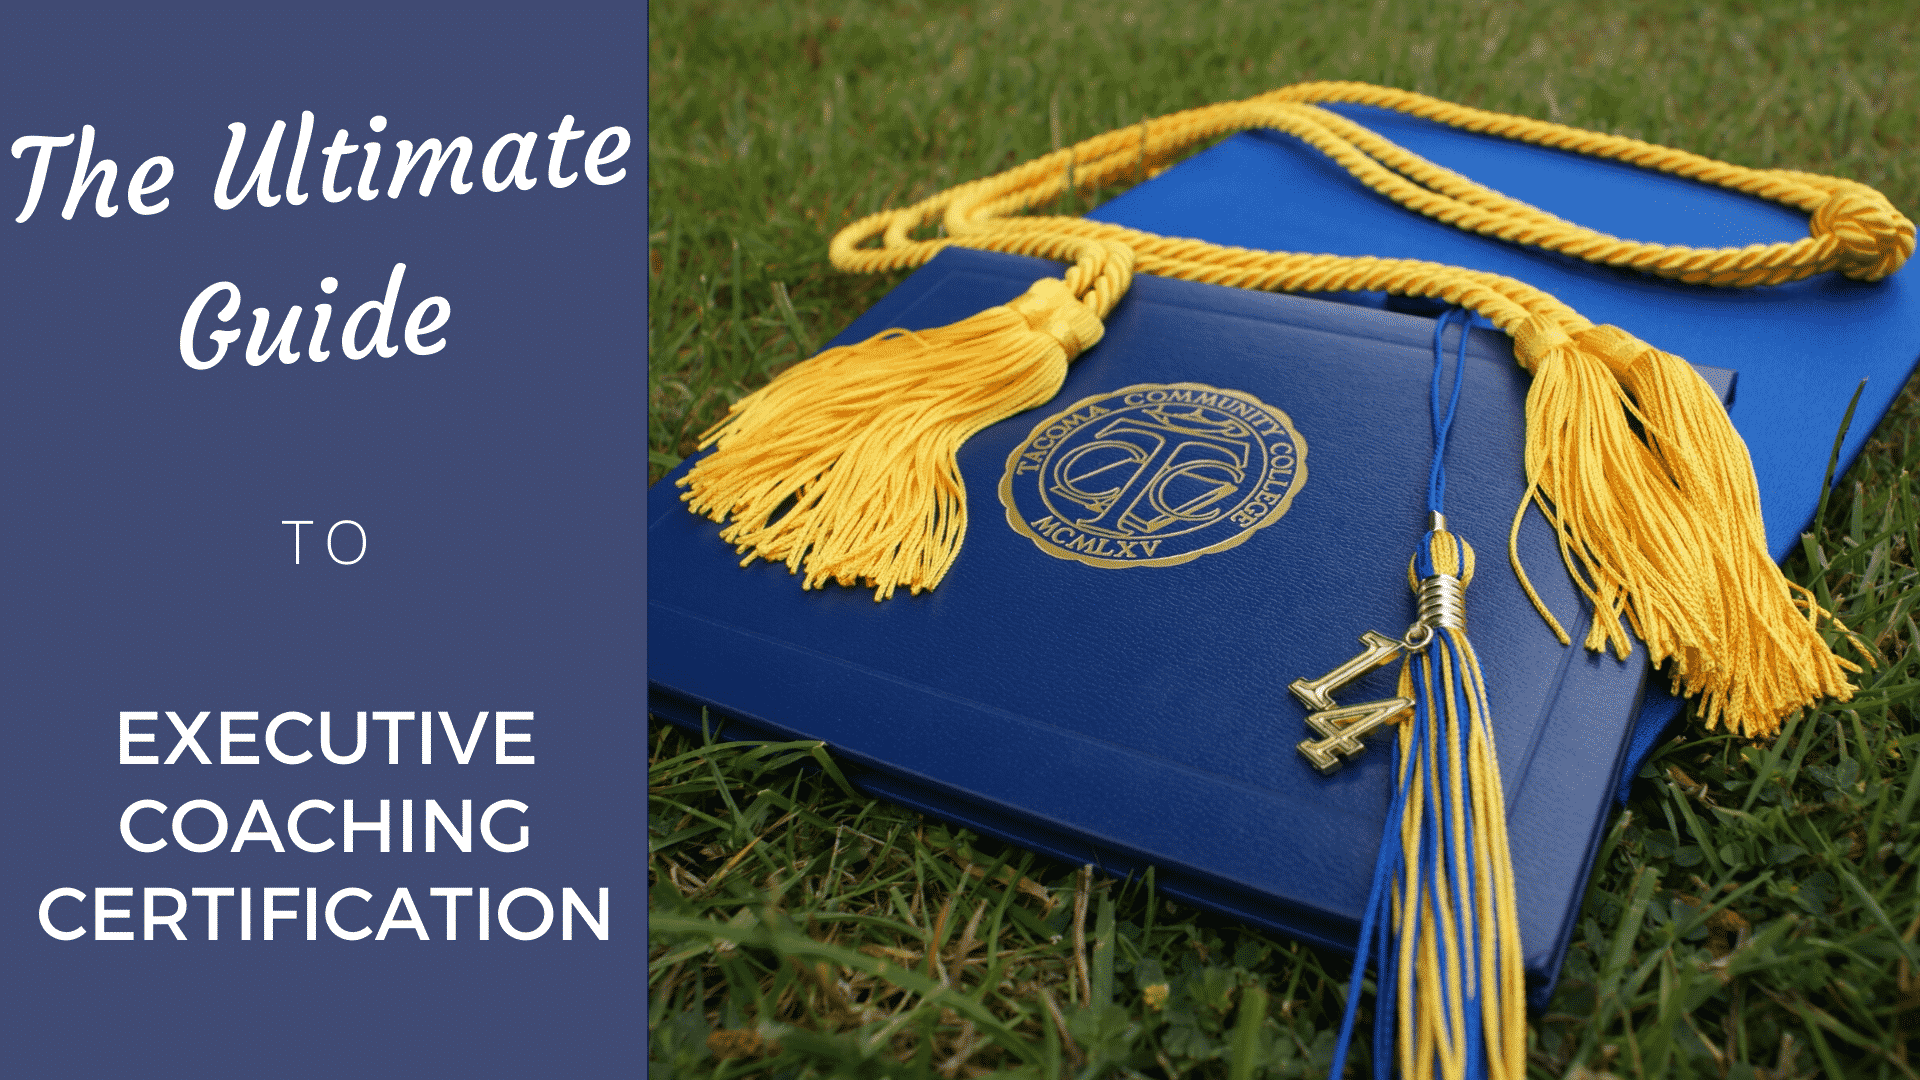 Executive Coaching Certification: The Ultimate Guide in 2020